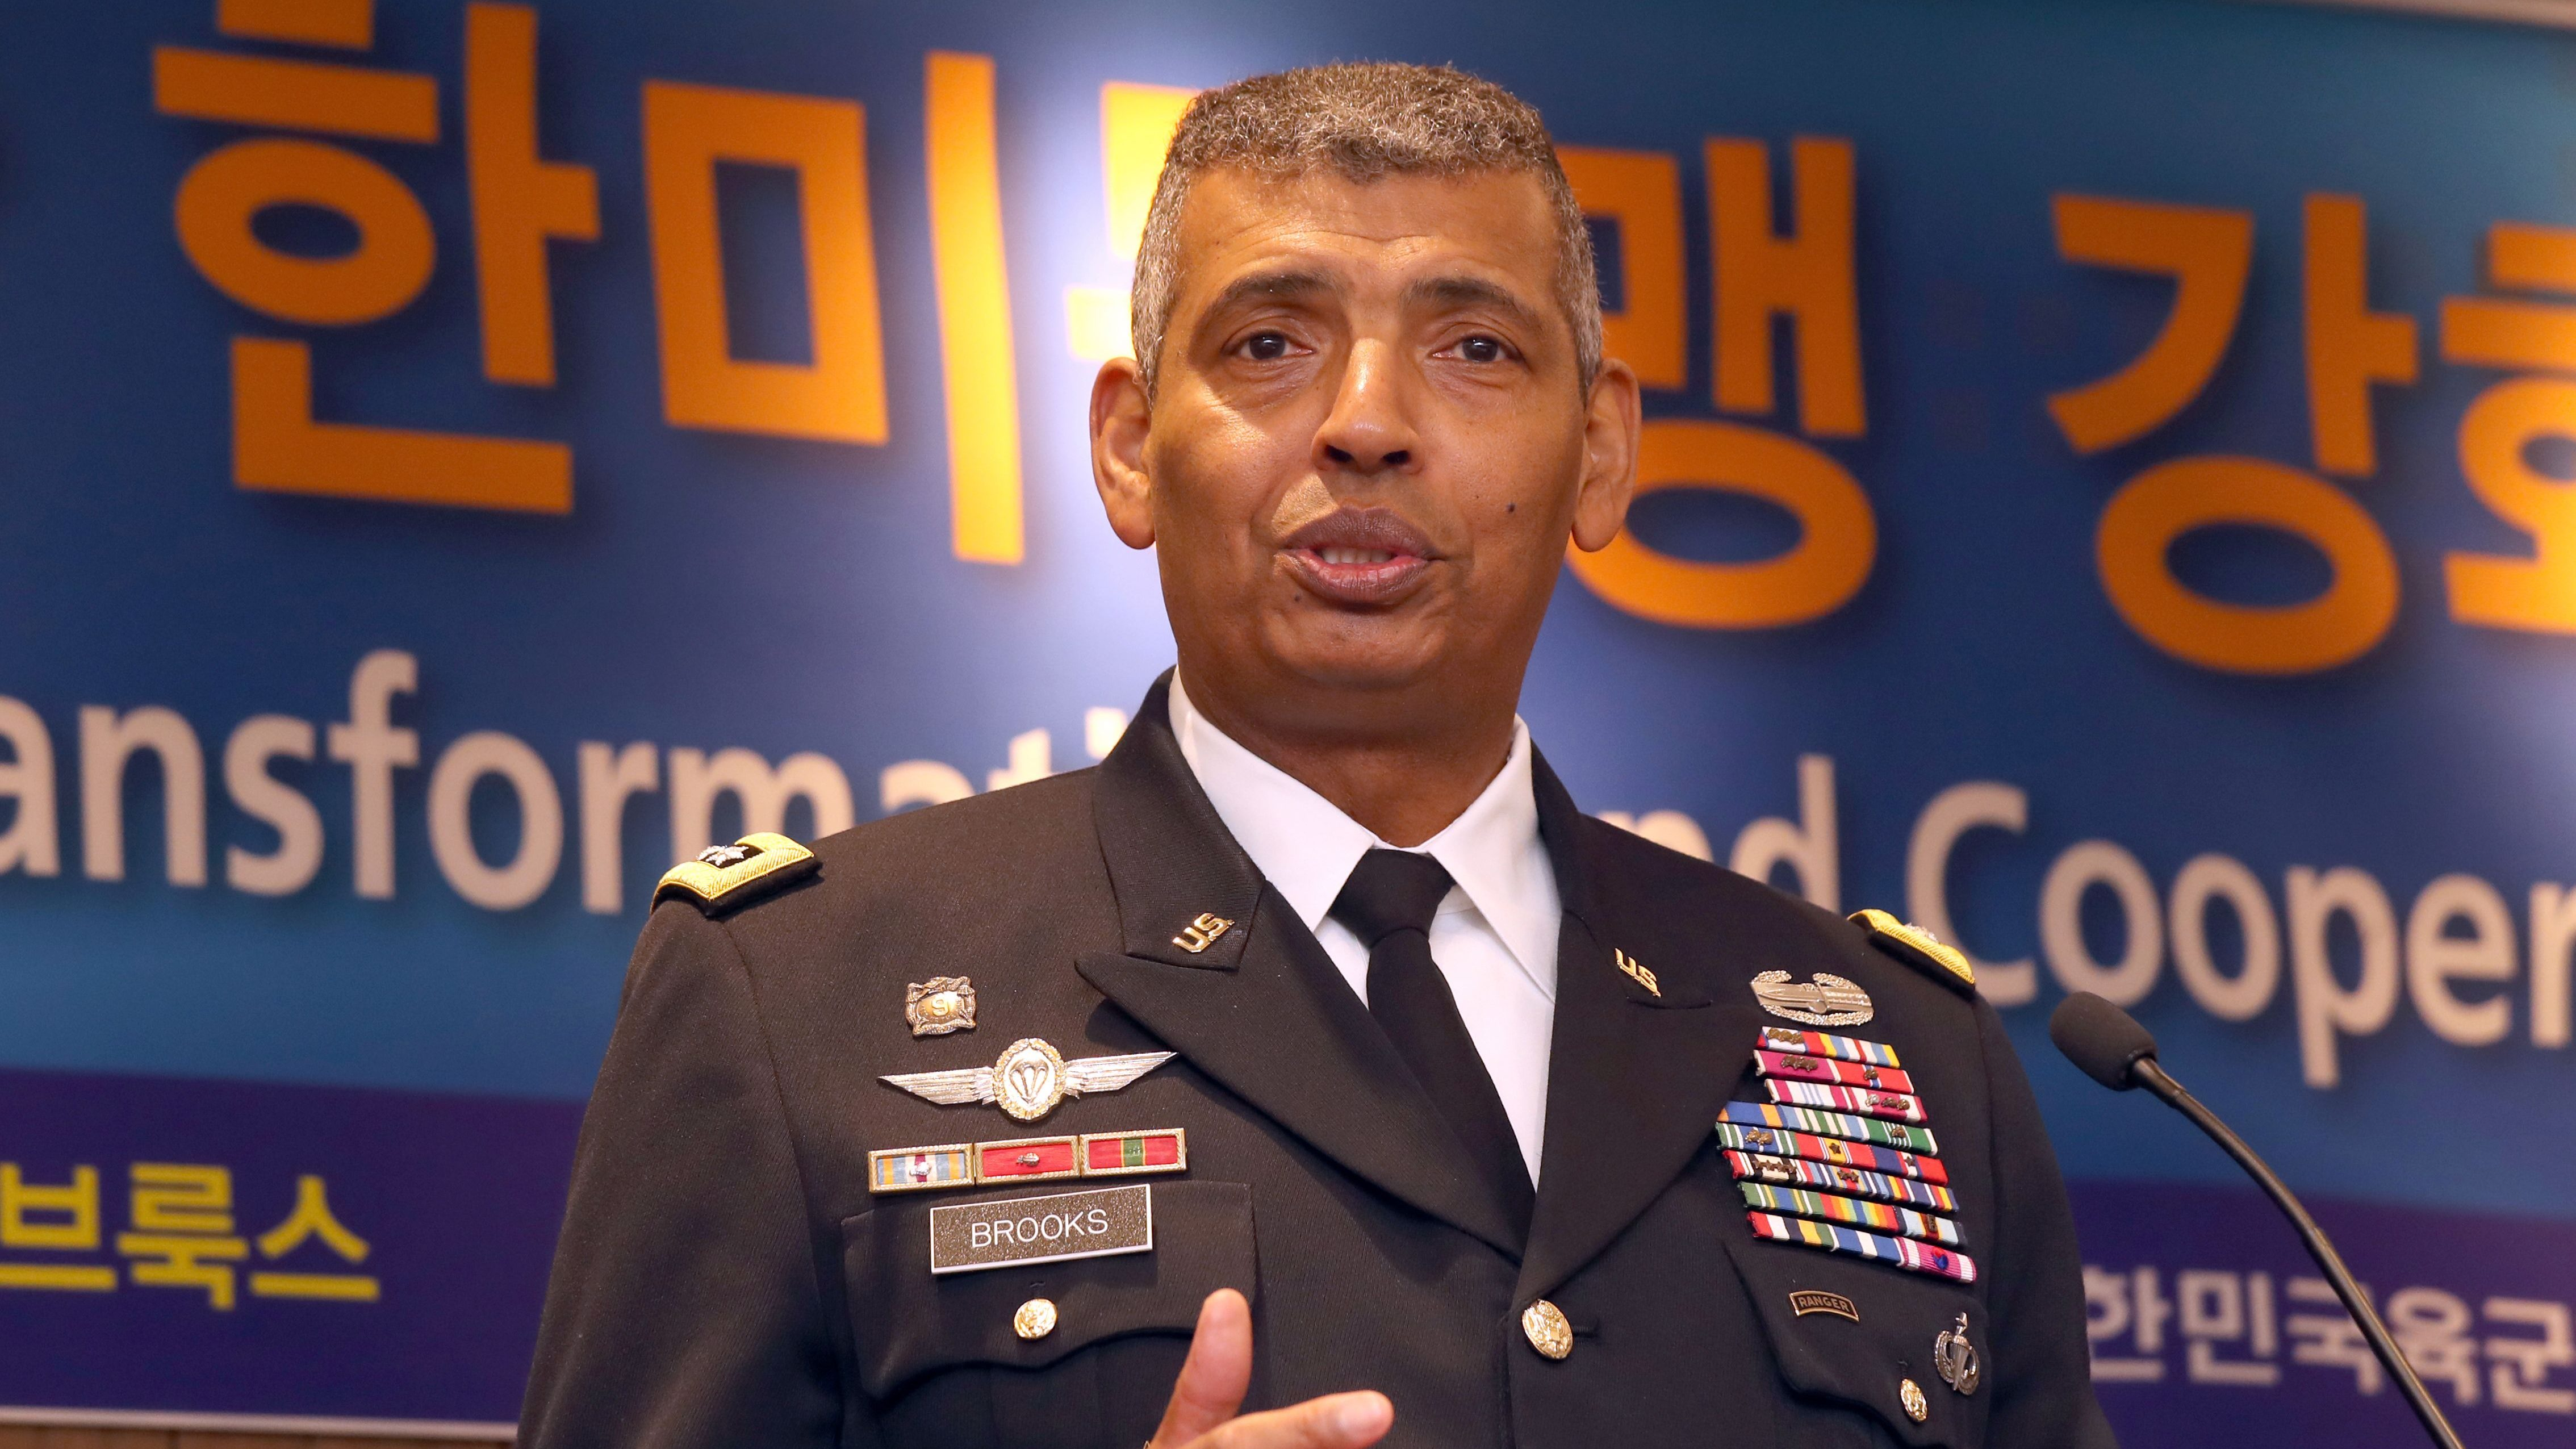 General Vincent Brooks, commander of United States Forces Korea, gives a lecture, organized by the Association of the Republic of Korea Army, at a hotel in Seoul, South Korea, 03 November 2017.